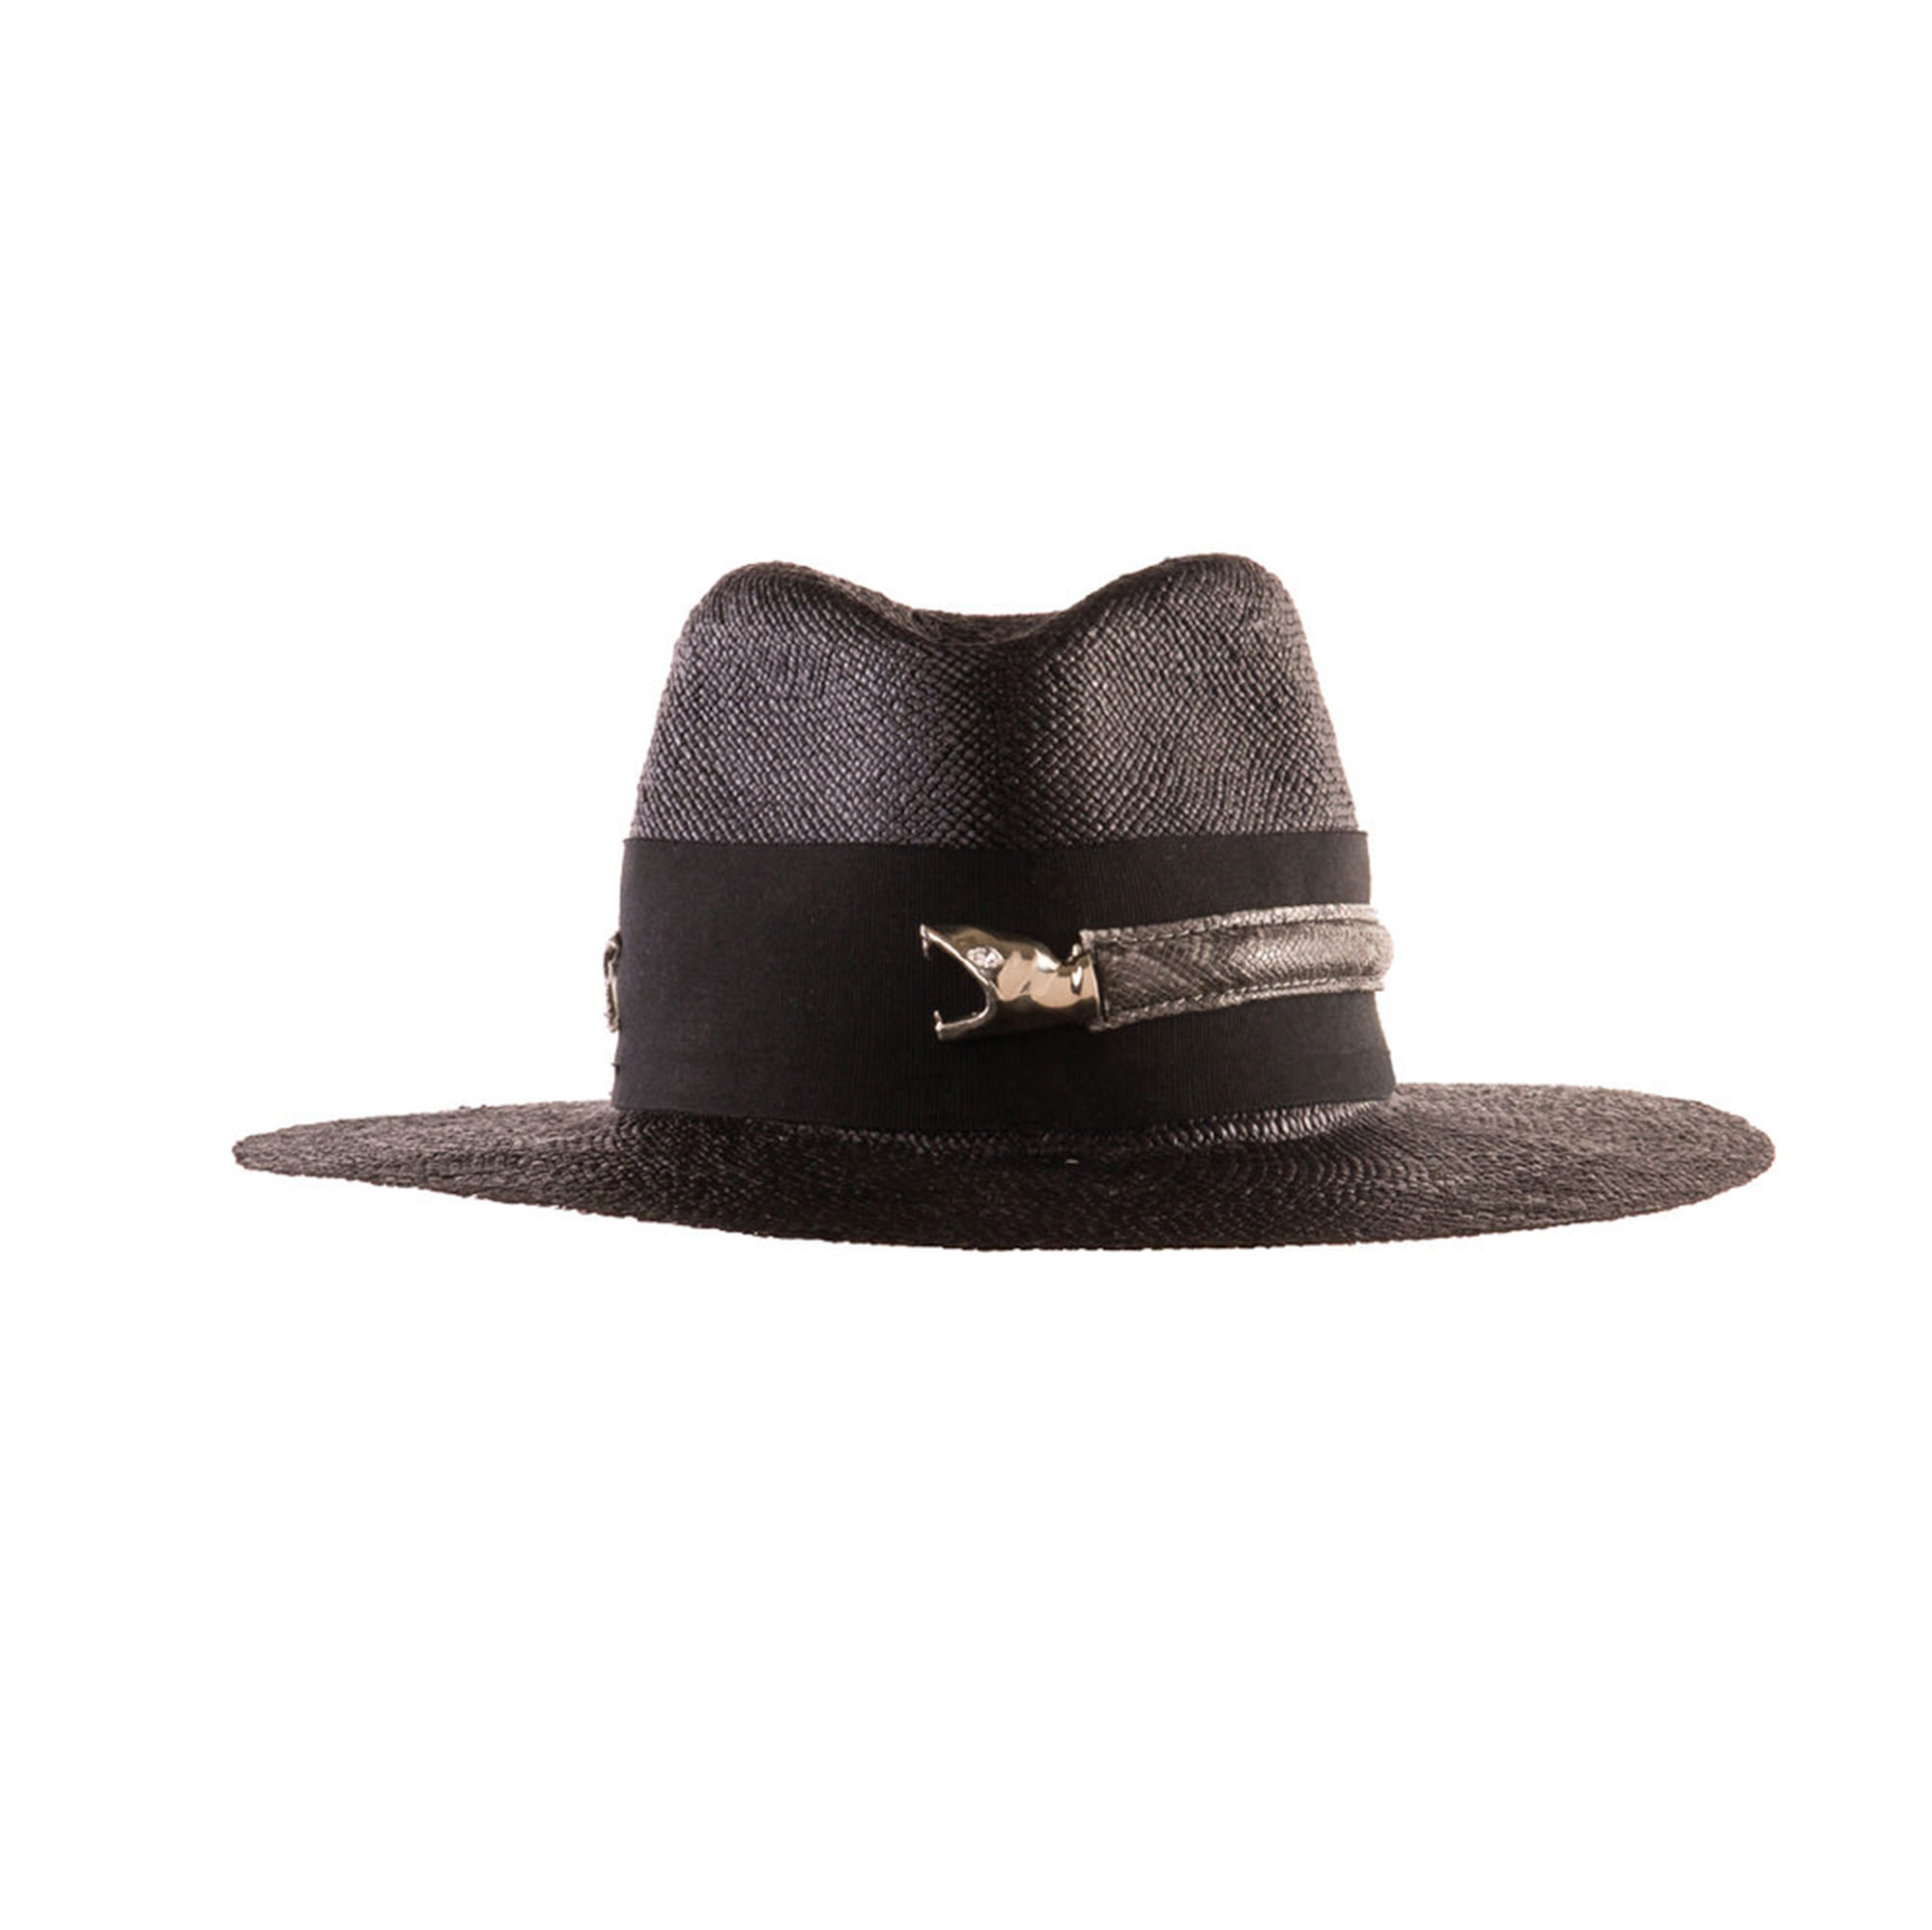 7 Black Panama Hats Inspired by Gigi Hadid¹s Œ90s Wedding Style - Take a cue from Gigi Hadid with this hand-stitched snake-adorned topper. $600, yousseflahlou.com